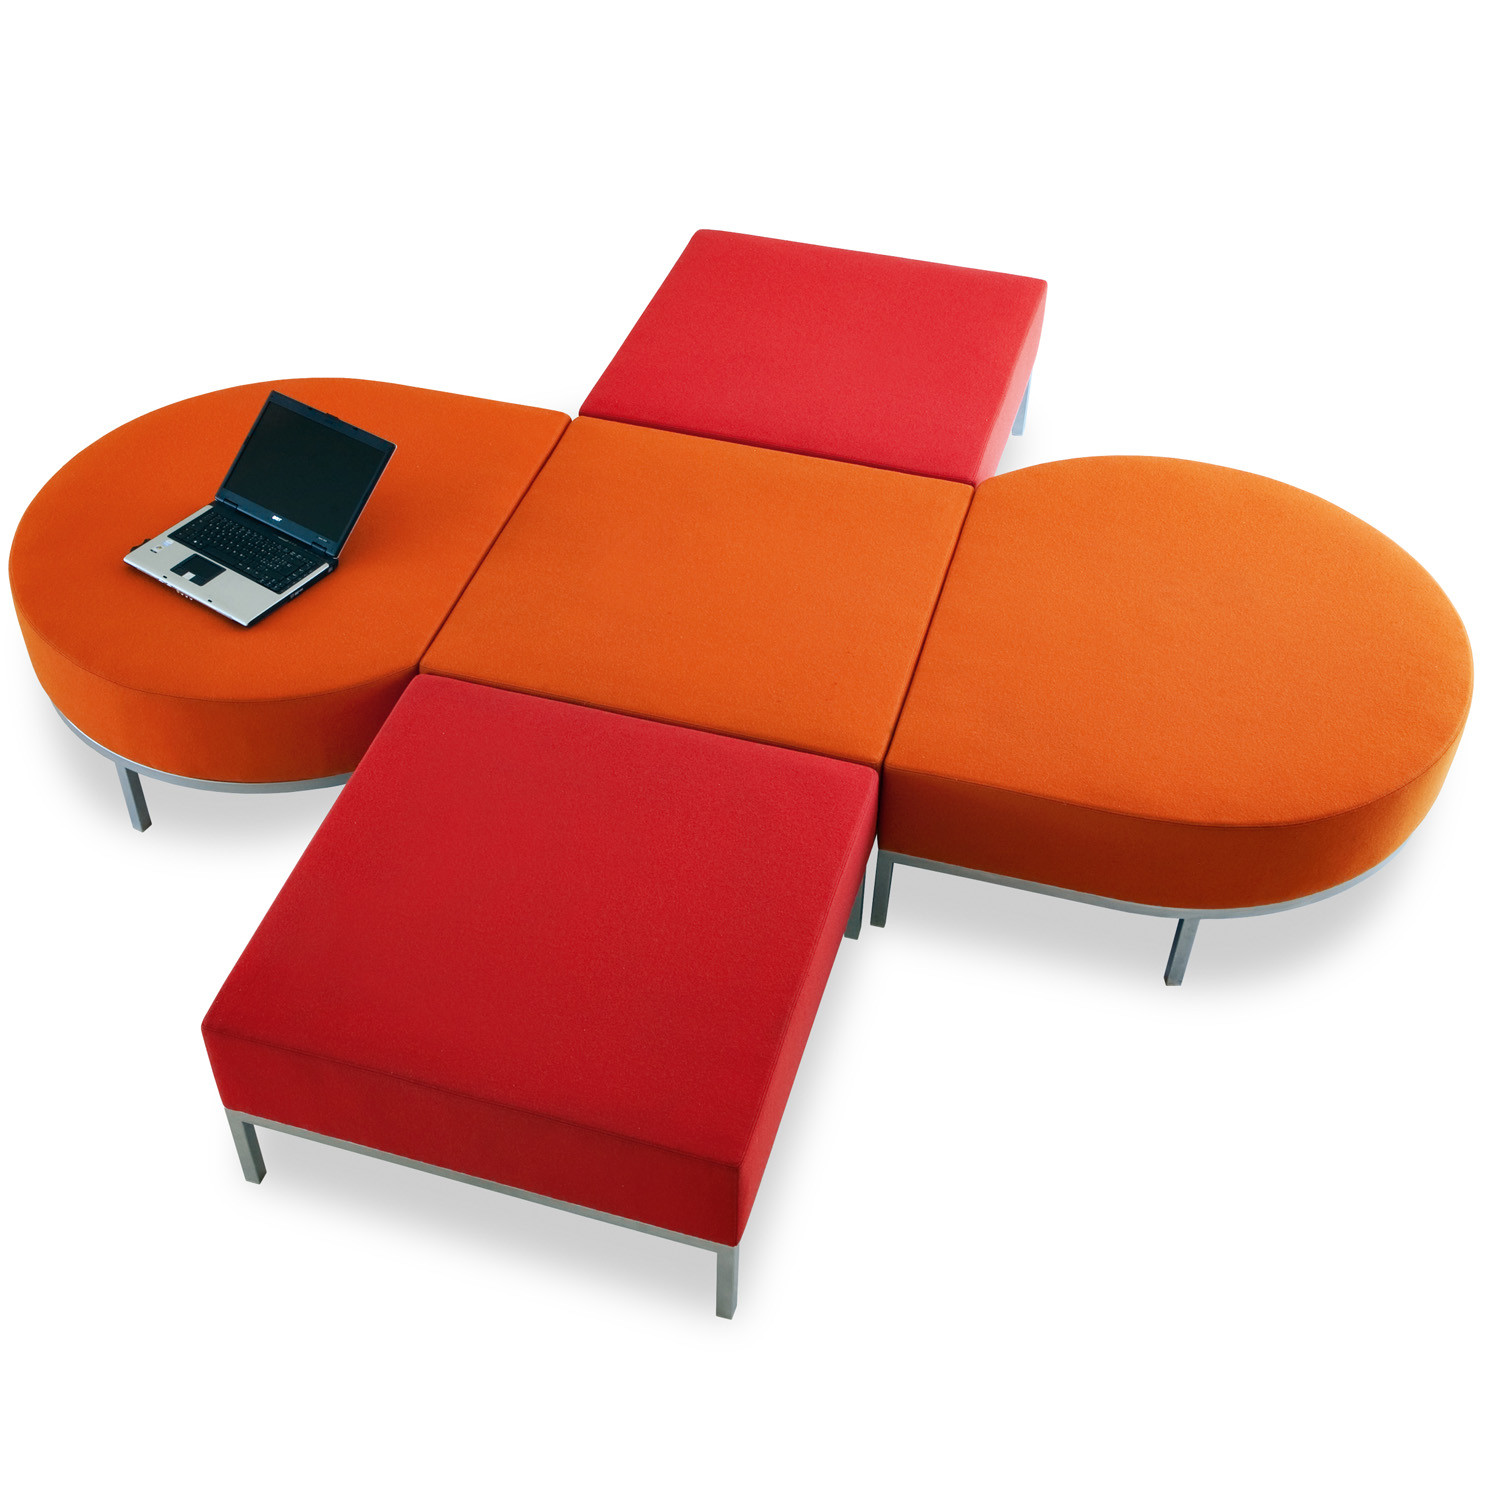 Take Your Time Modular Seating